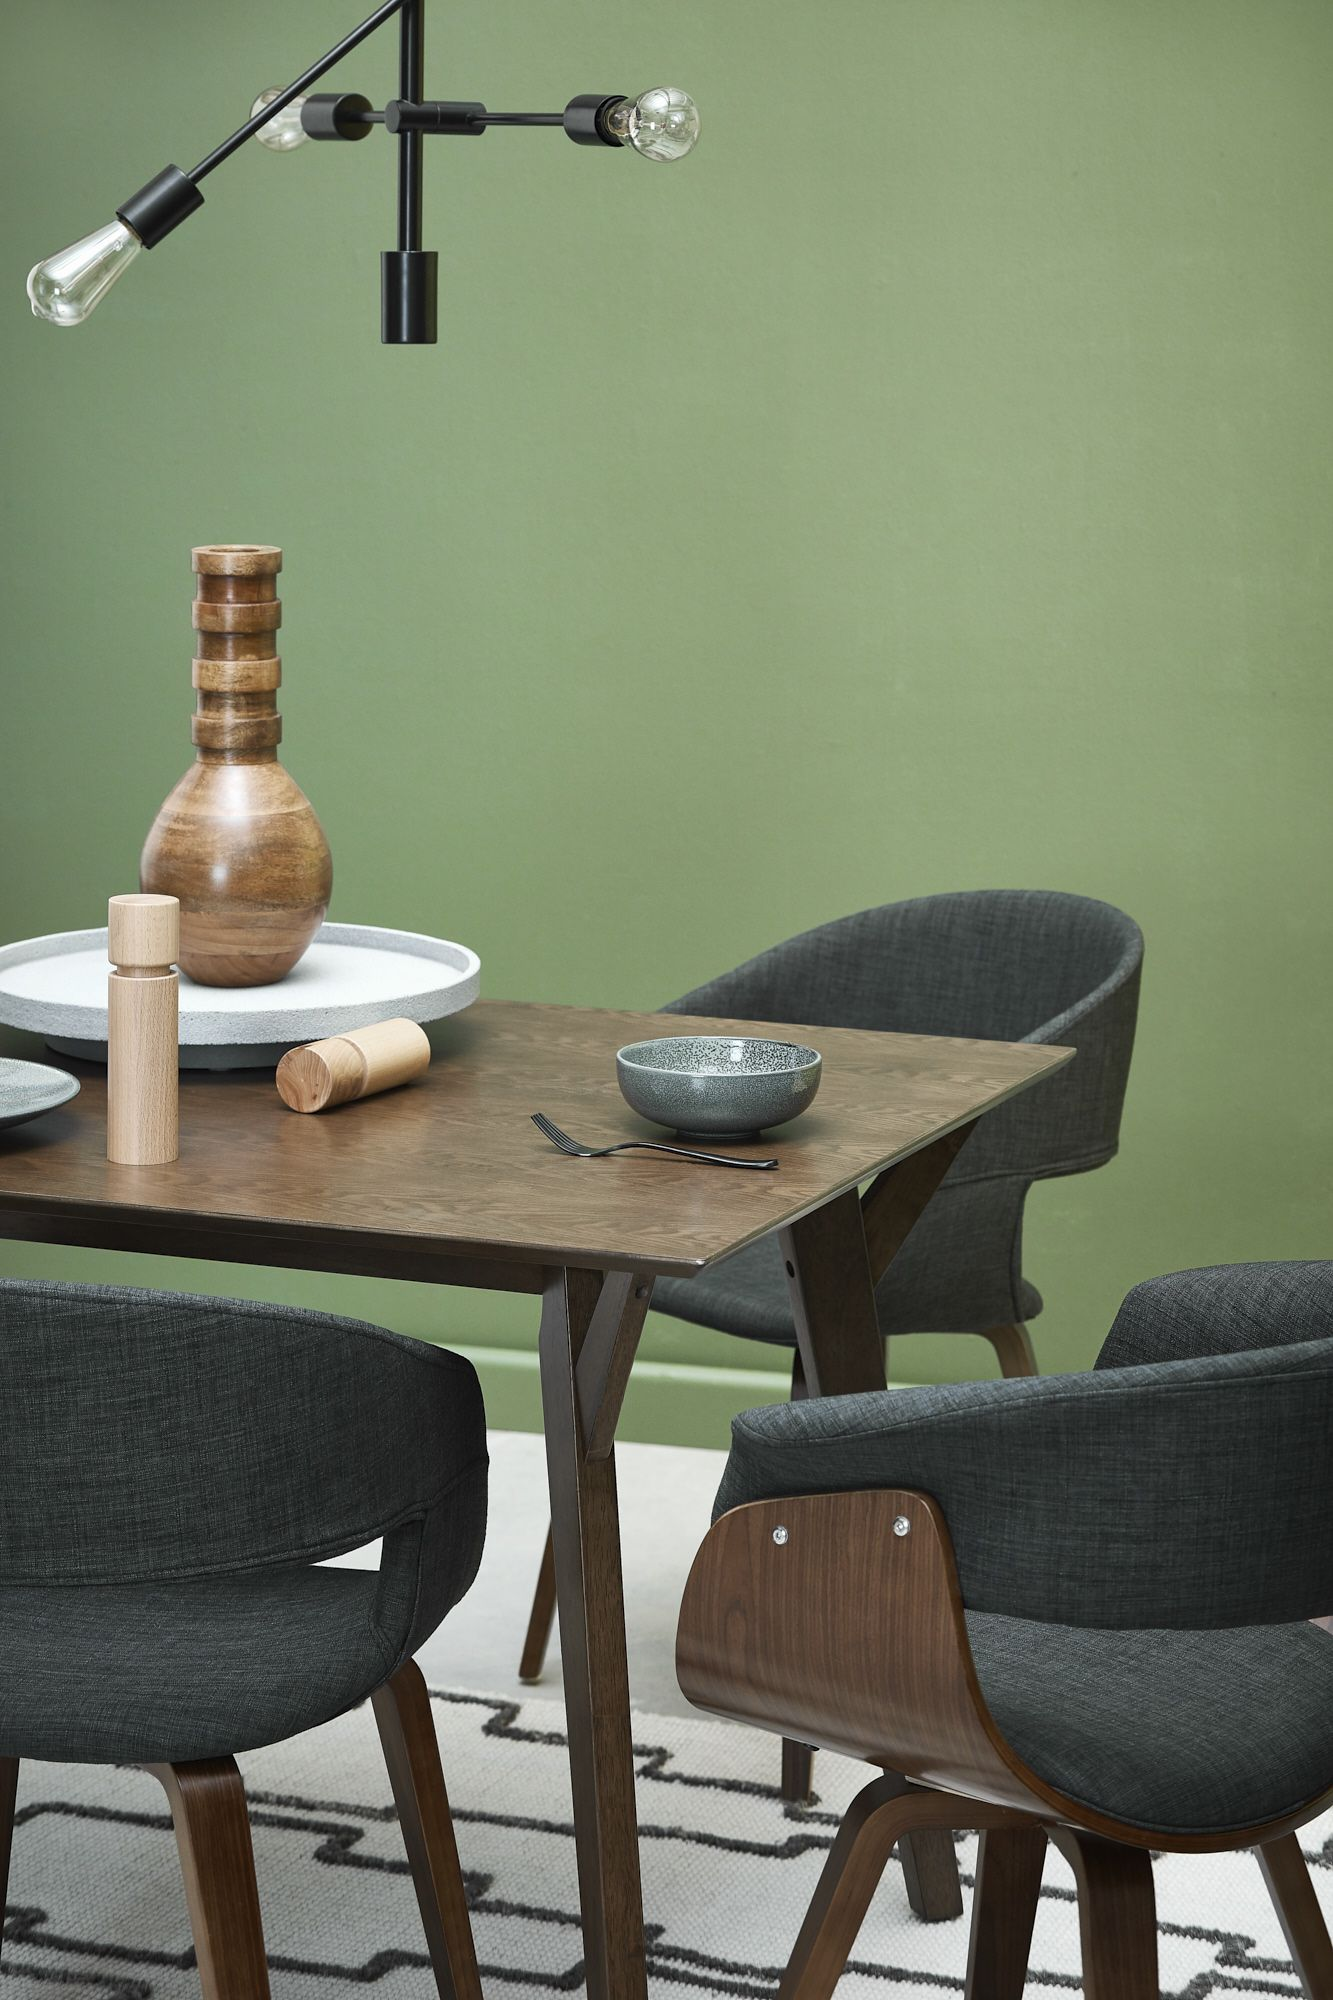 Indulge your eye for Mid Century design and create a